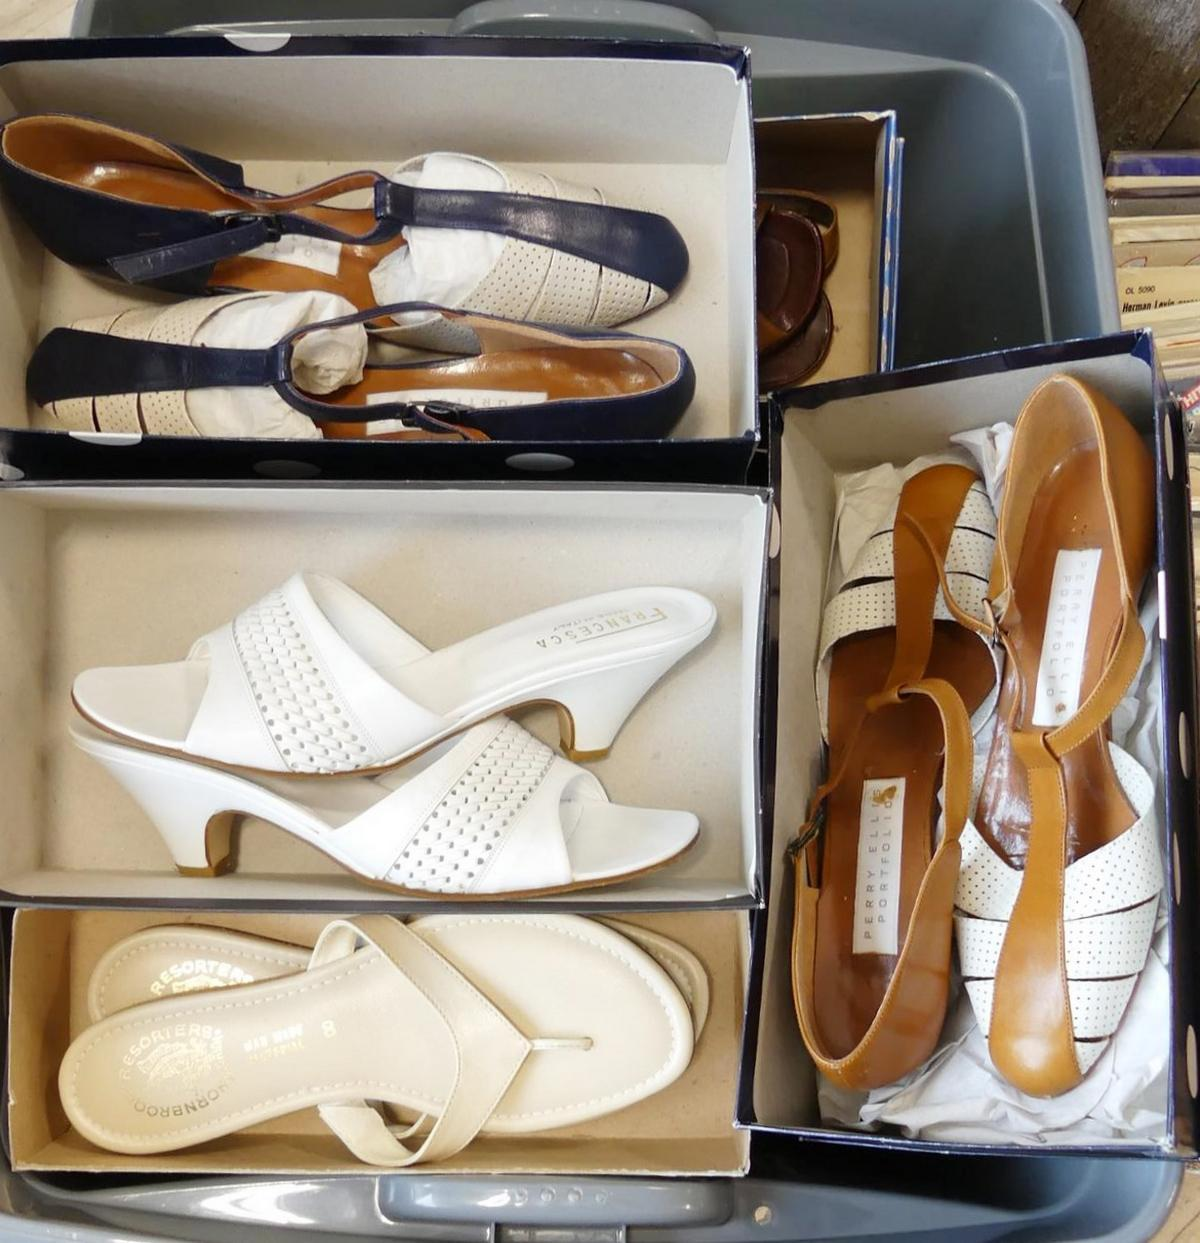 LADIES' SHOES AND SANDALS